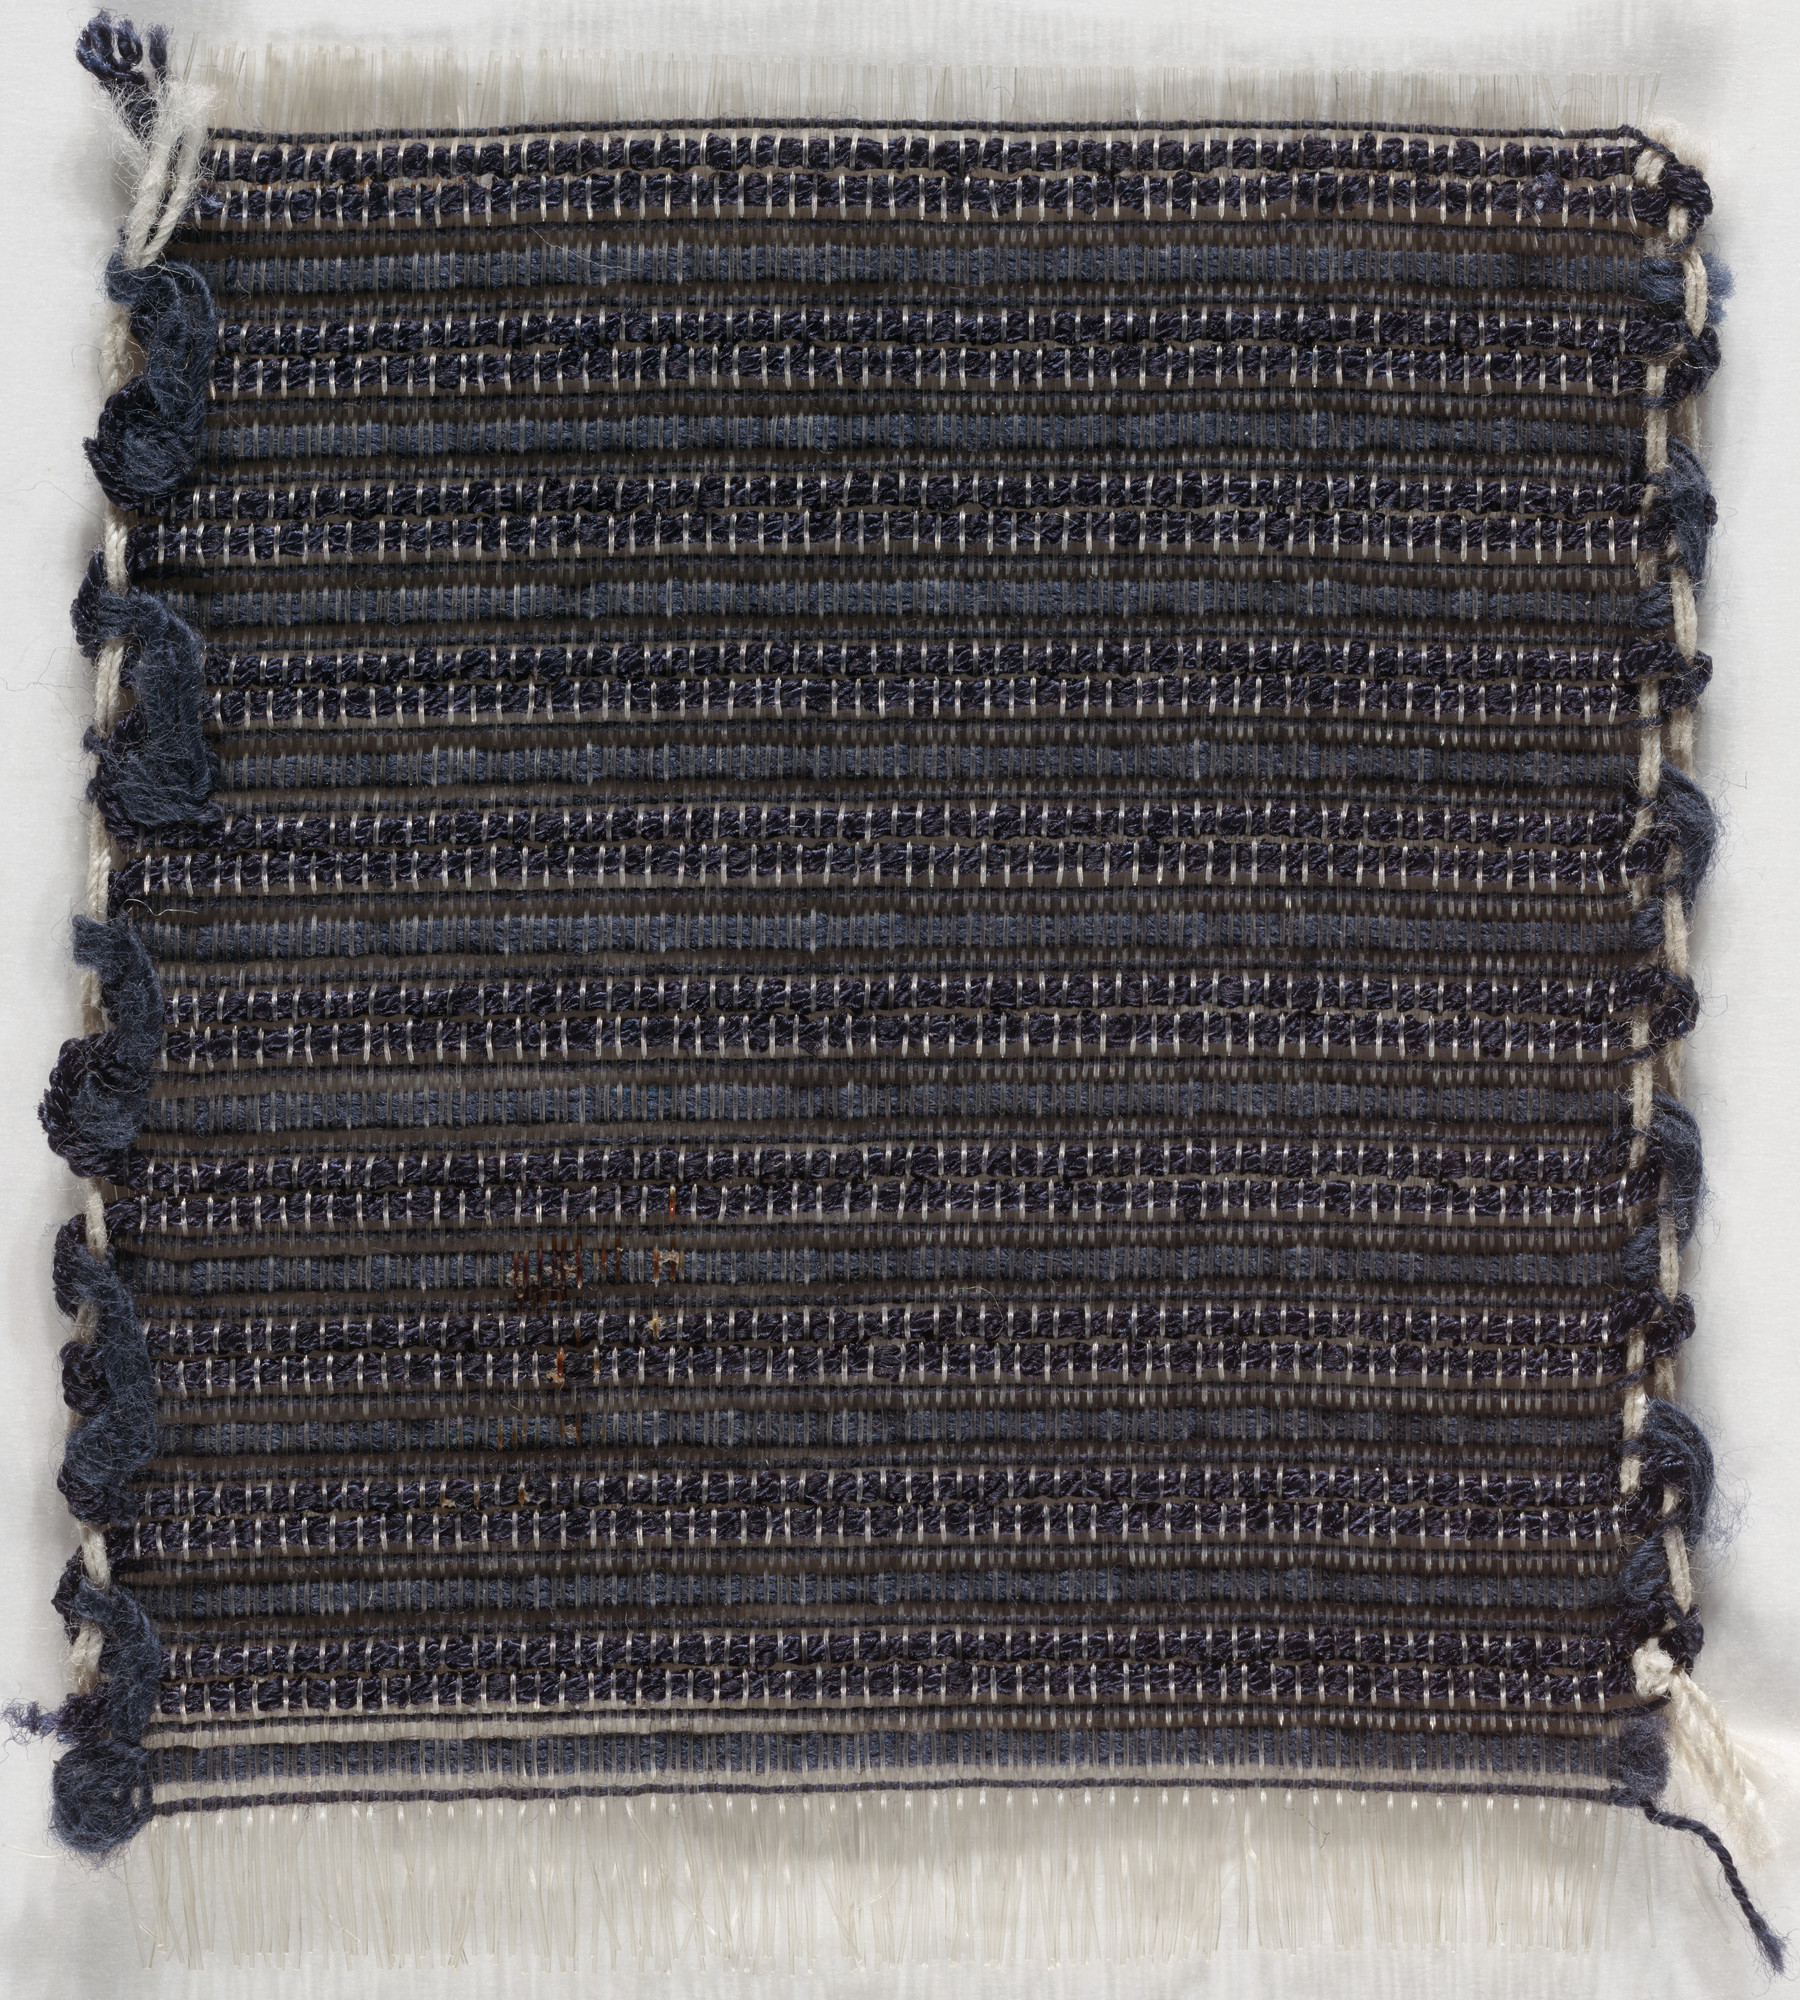 Anni Albers. Automobile Upholstery Material. After 1933